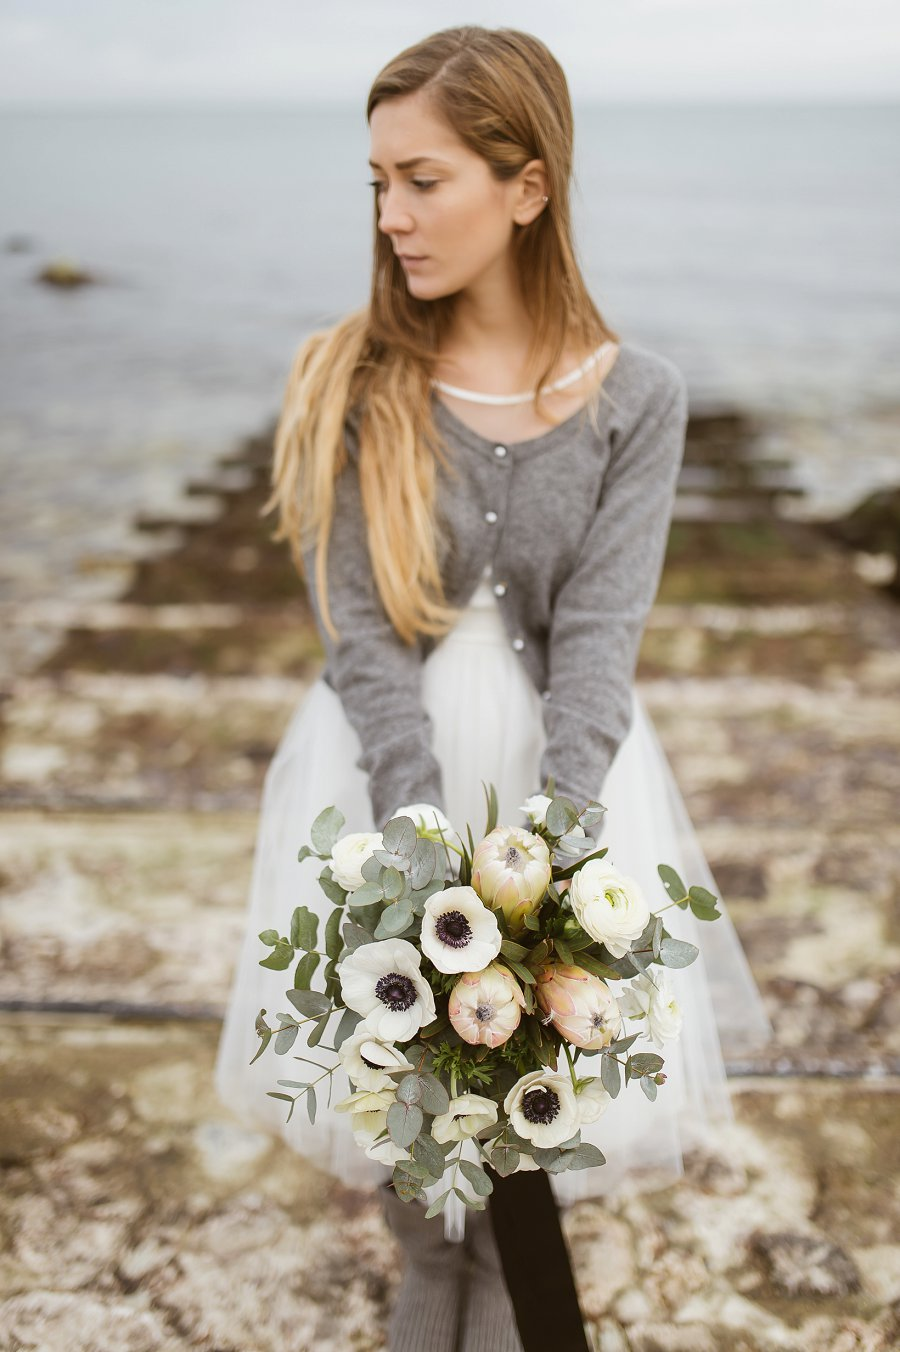 A Whimsical, Wild, White, Winter Bridal Editorial!